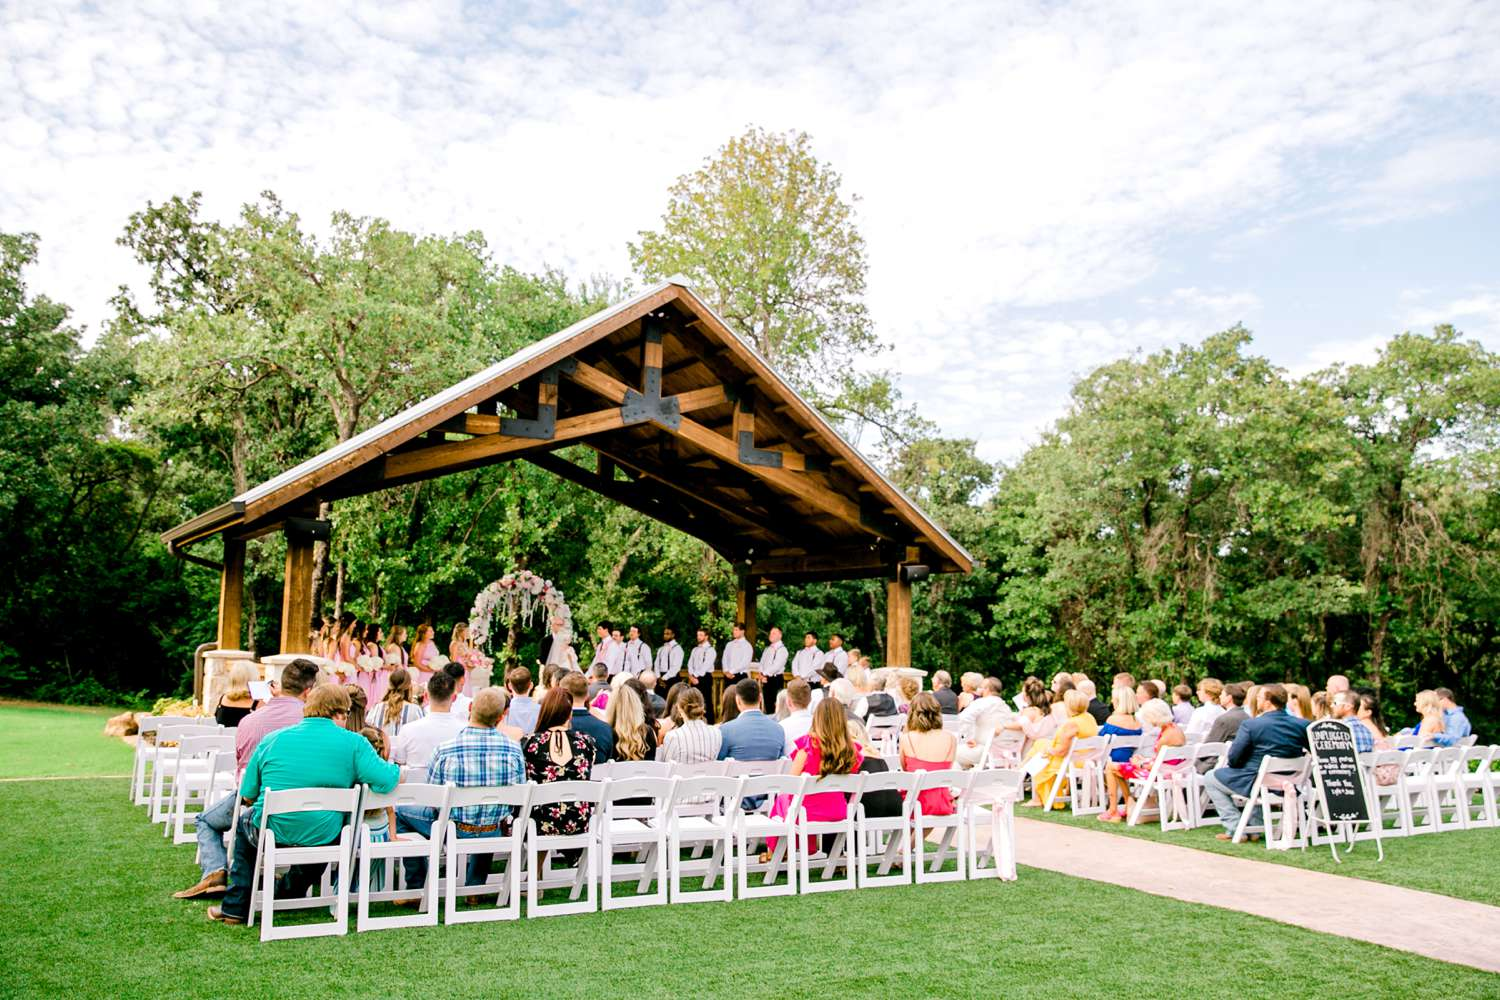 JESSICA+LYLE+NEEL+THE_SPRINGS_EVENTS_WEDDING_OKLAHOMA_ALLEEJ_PHOTOGRAPHER_0056.jpg